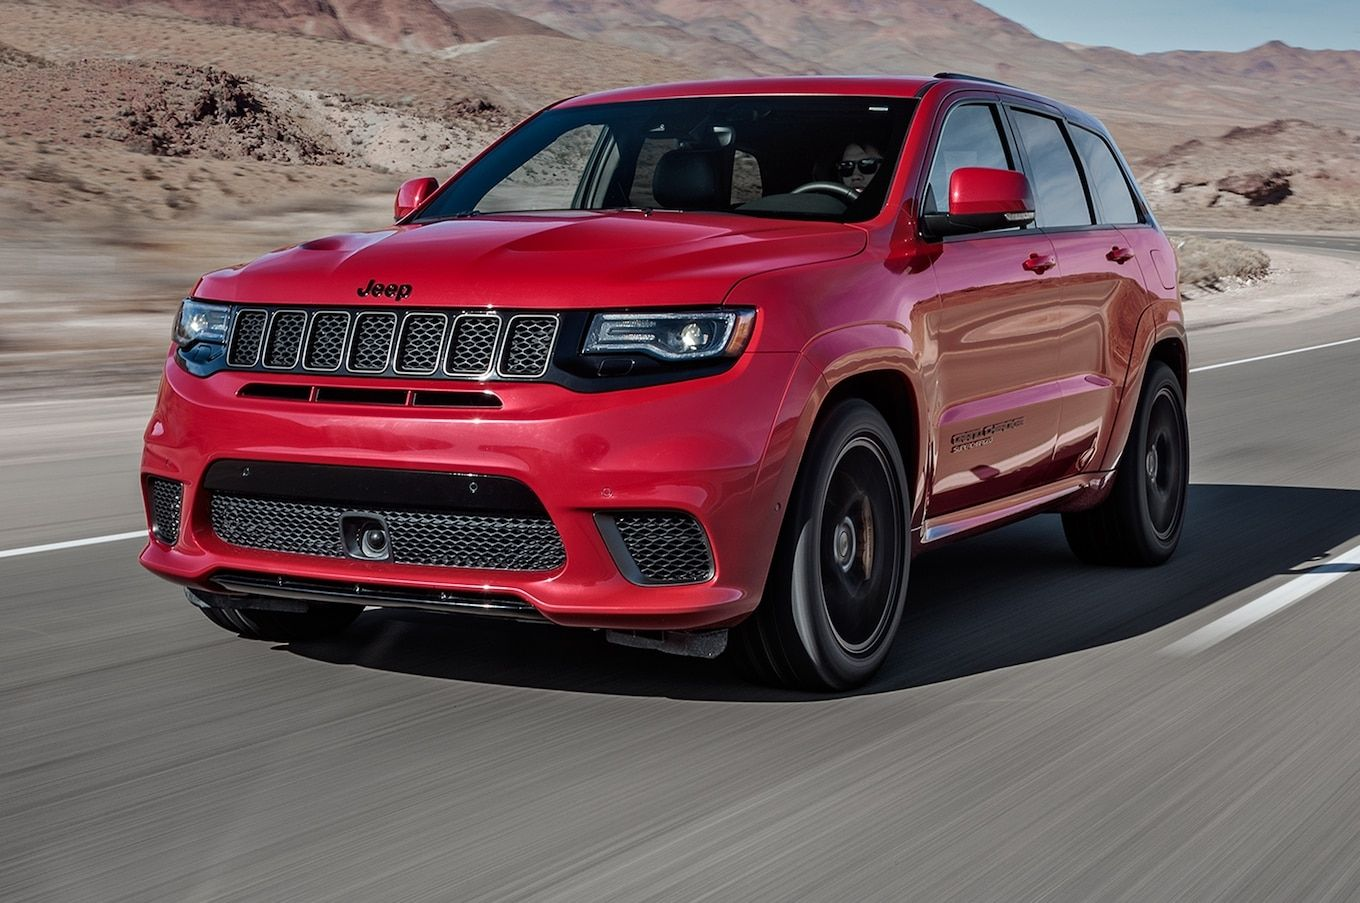 2020 Jeep Grand Cherokee Trackhawk Review Pricing And Specs Jeep Grand Cherokee Models Jeep Grand Jeep